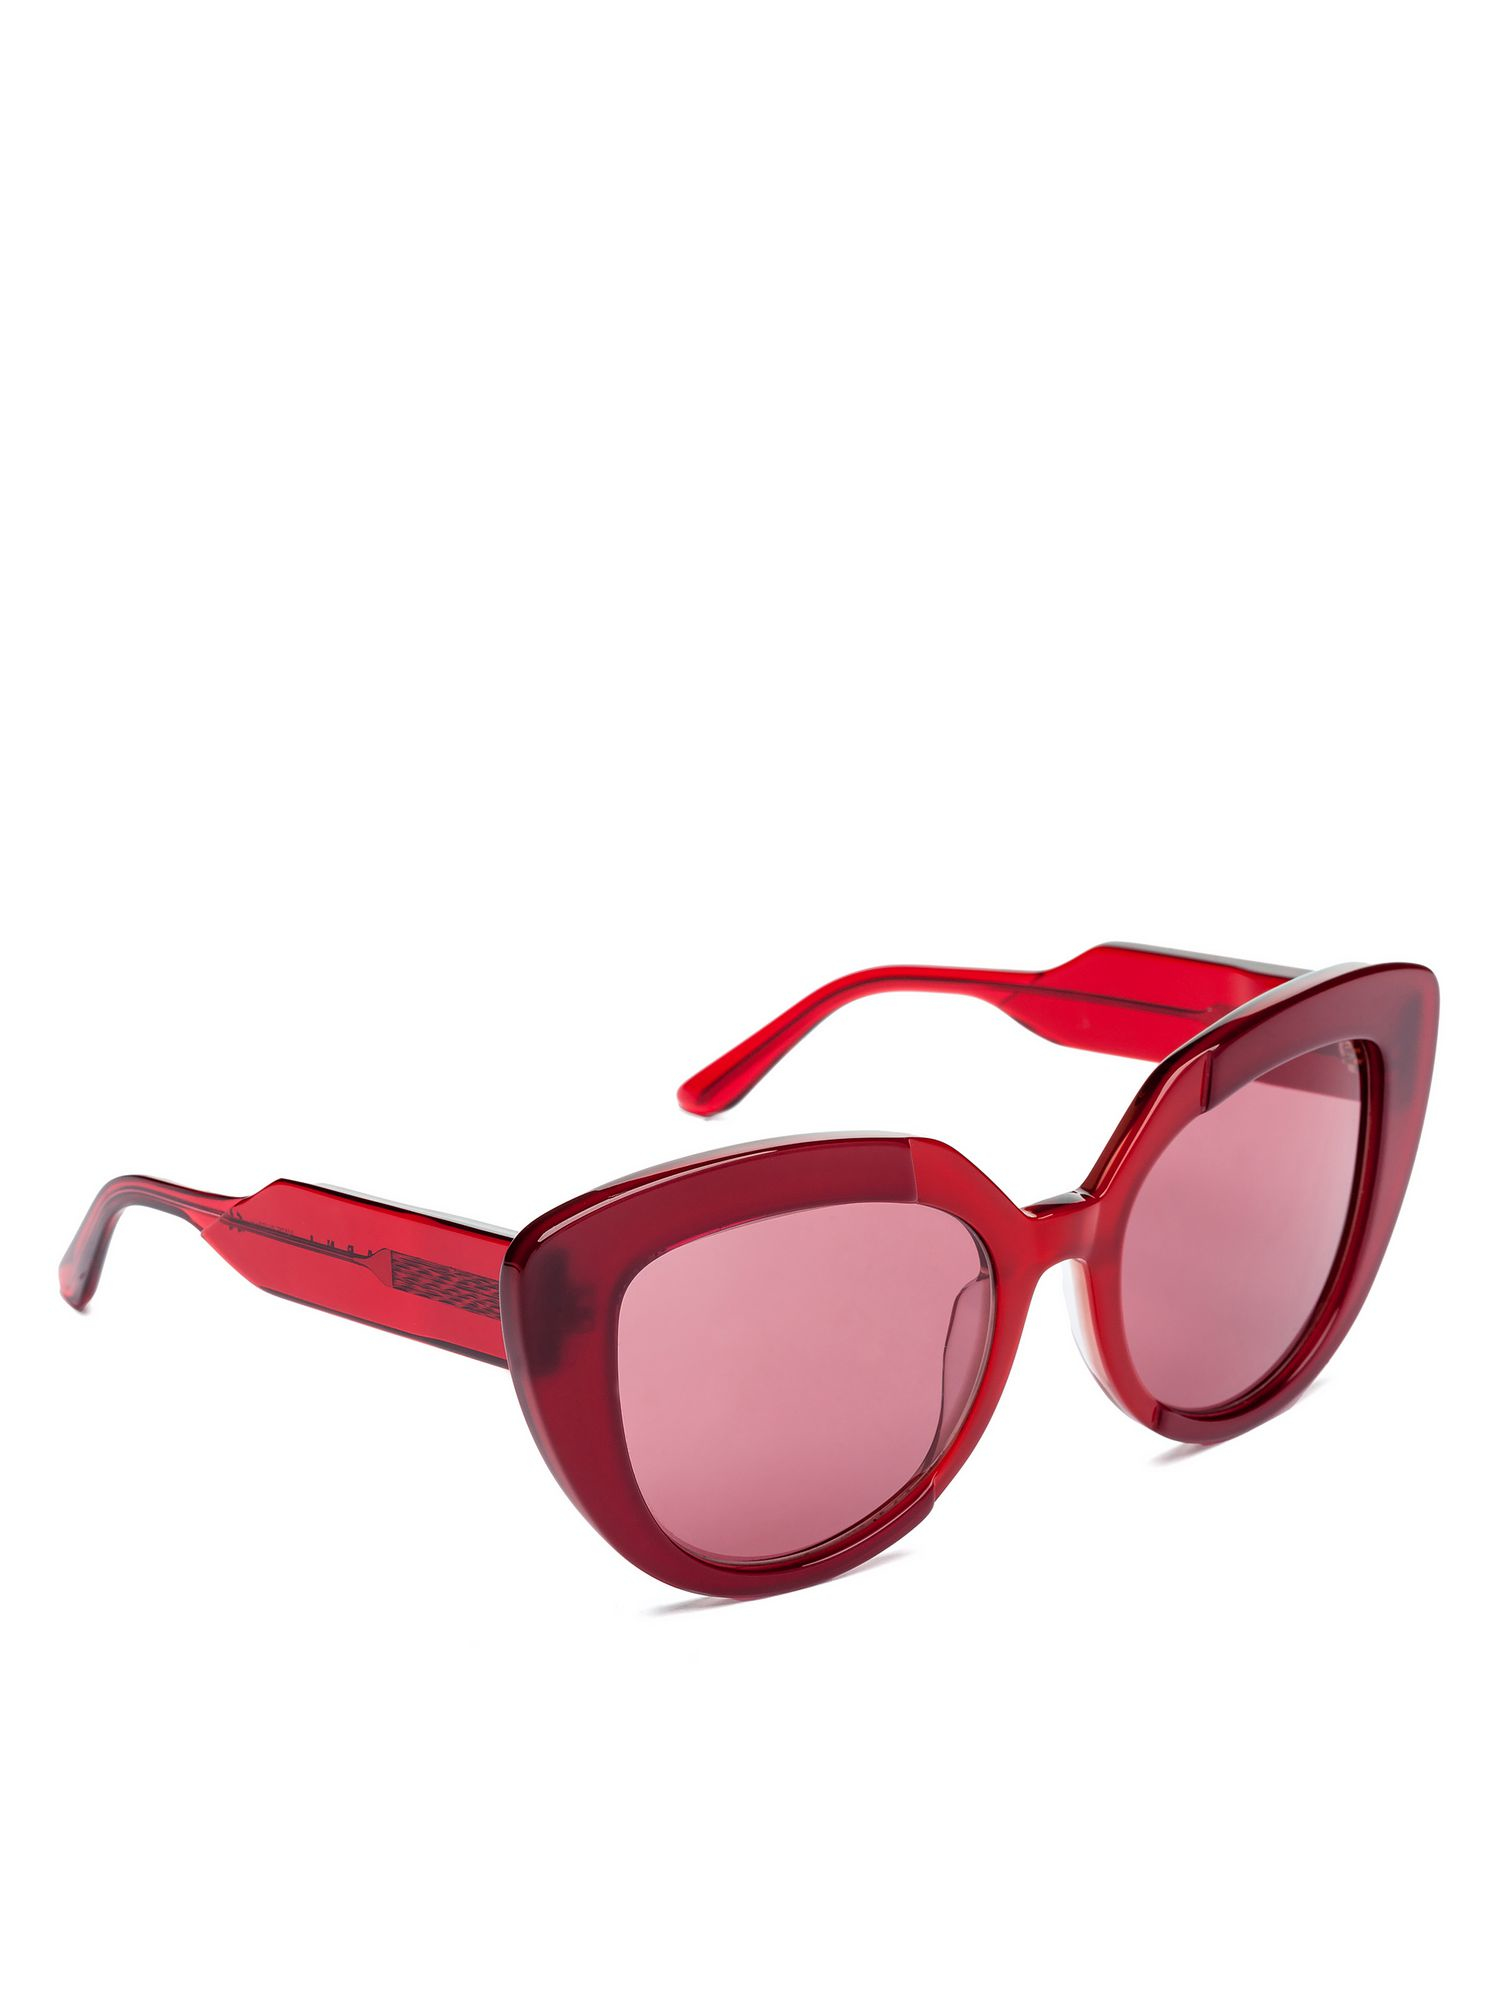 Kookai Glasses Frame : Marni Prisma Glasses In Low Relief Acetate in Purple Lyst